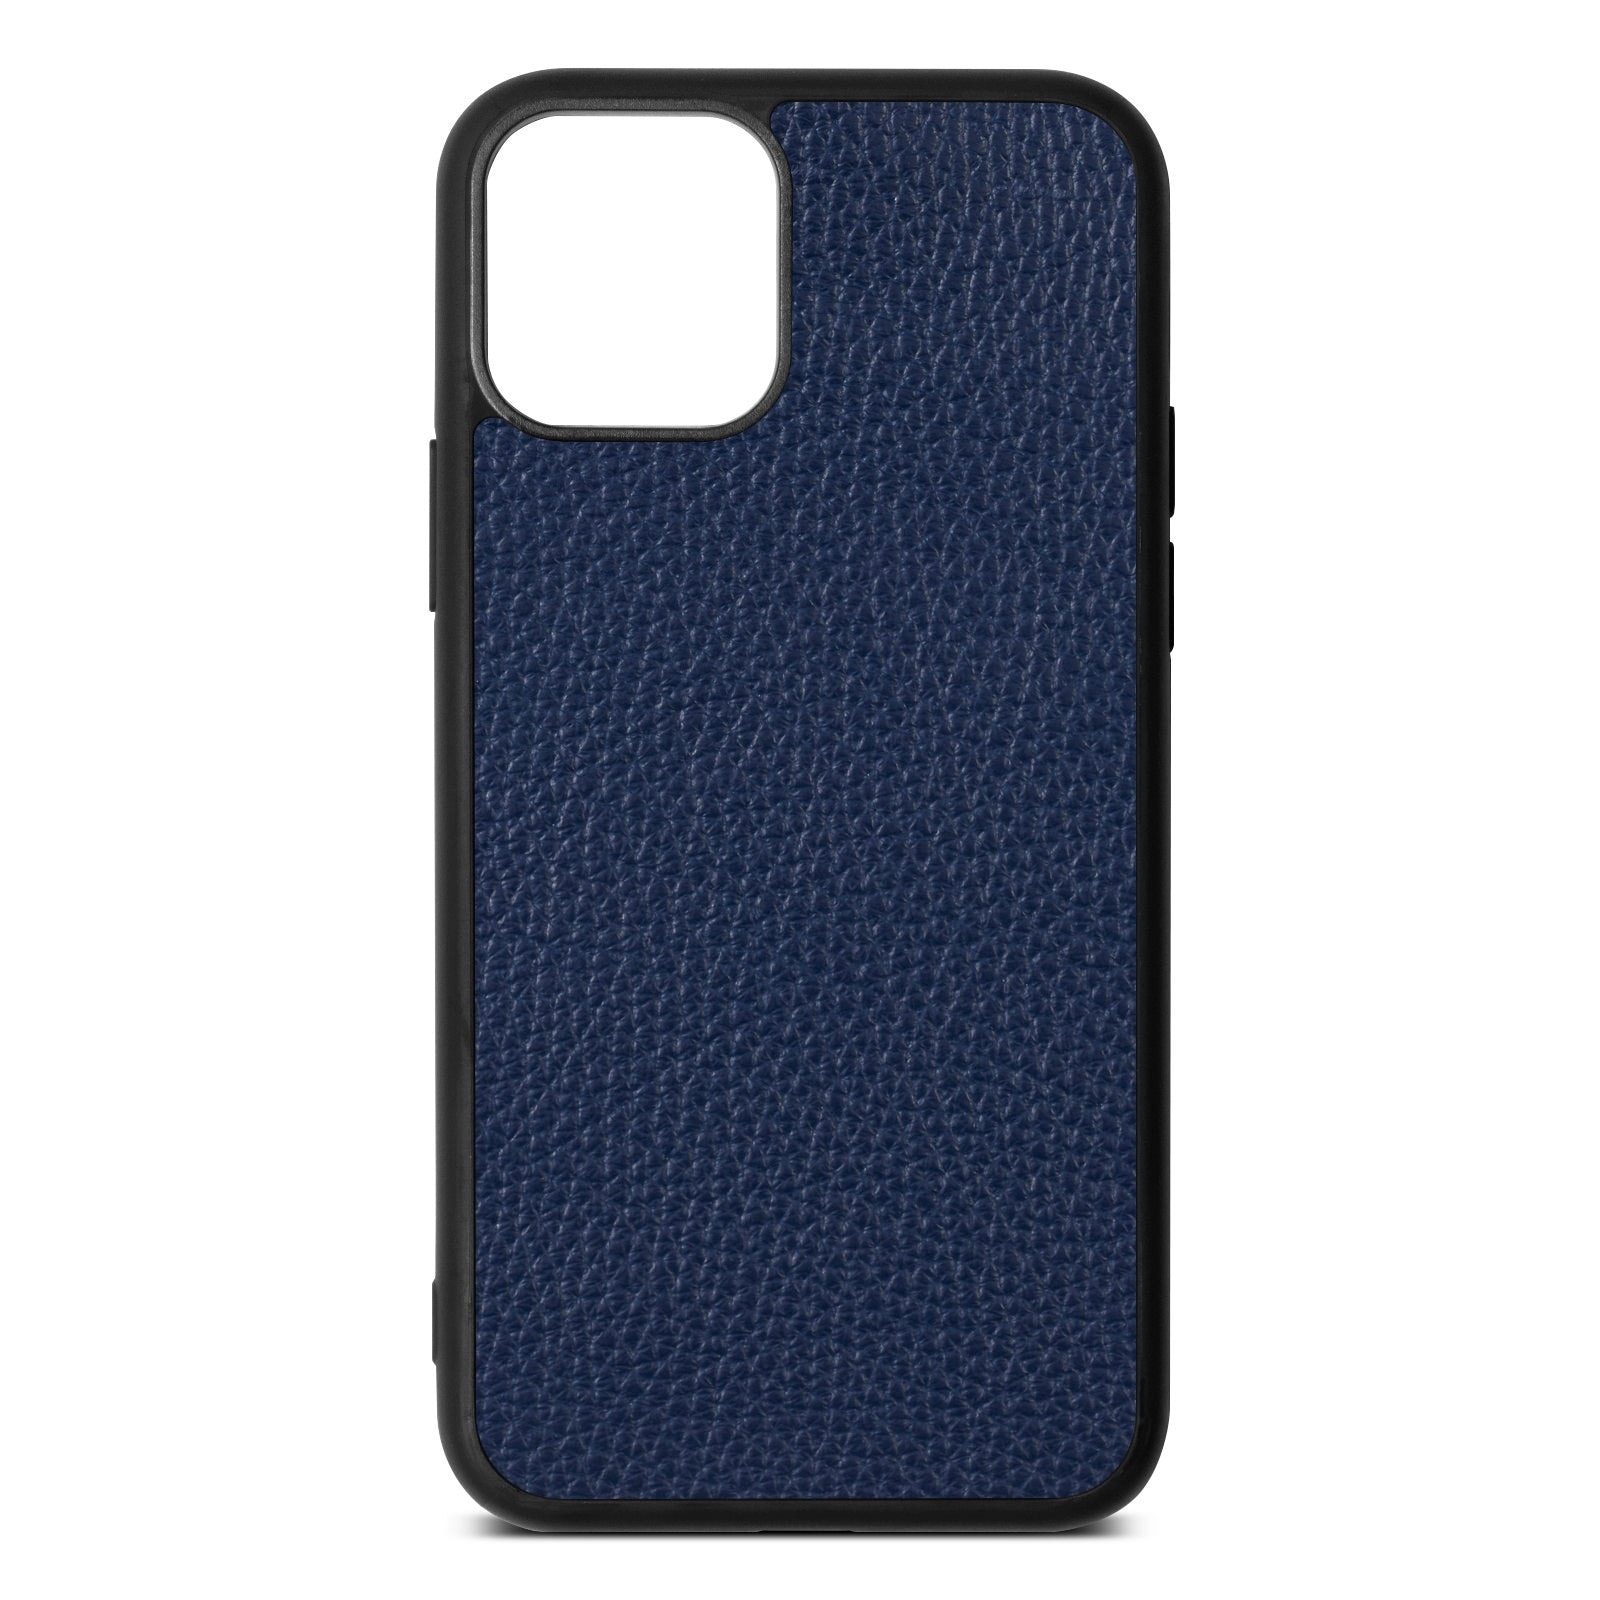 Blank iPhone 11 Pro Navy Blue Pebble Grain Leather Case